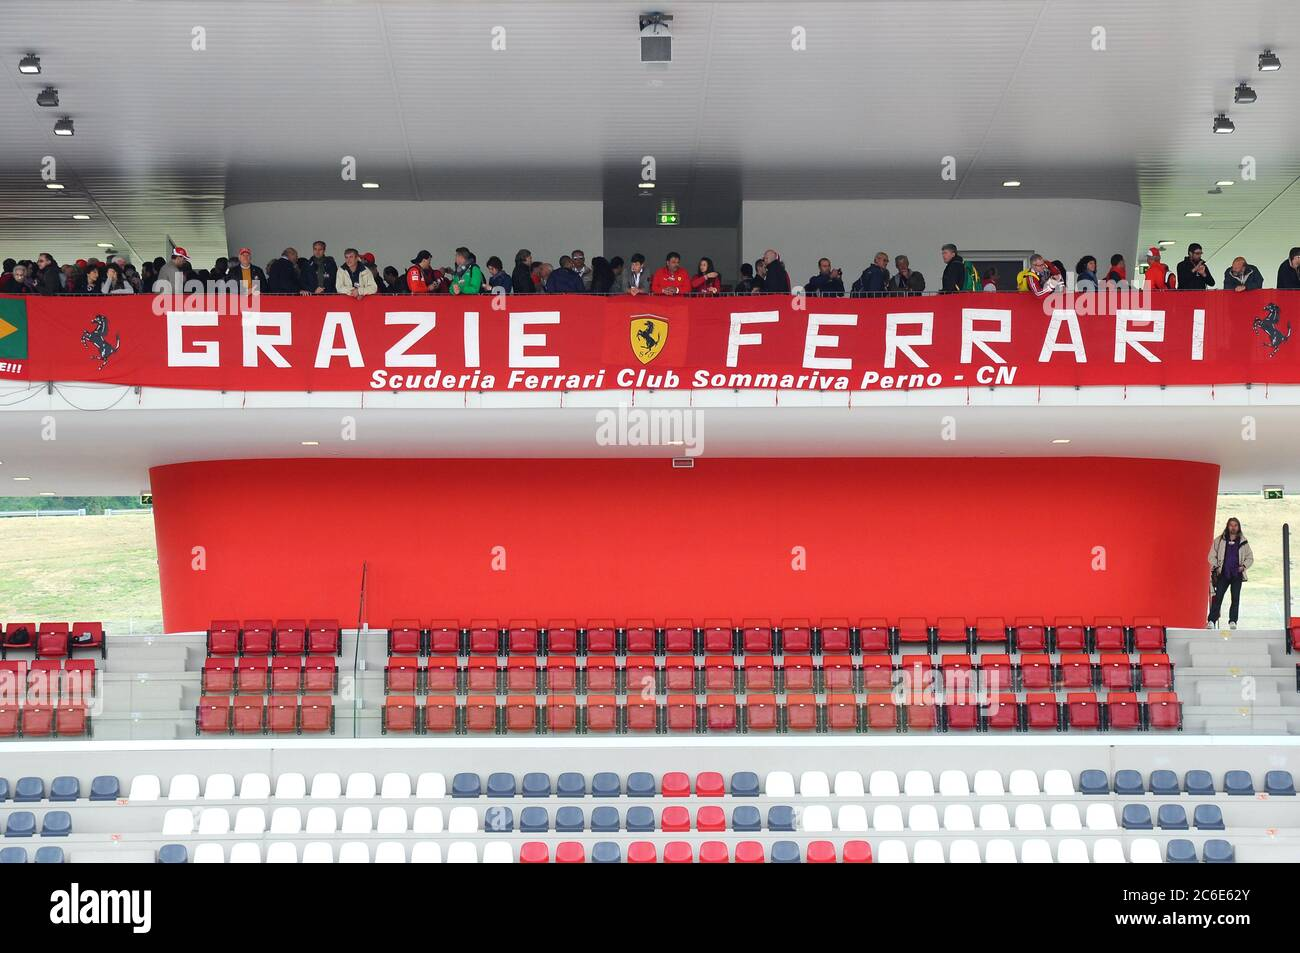 """MUGELLO, ITALY - MAY 2012: fans and banner with """"thank you Ferrari"""" on the central grandstand of the Mugello international Circuit. Stock Photo"""